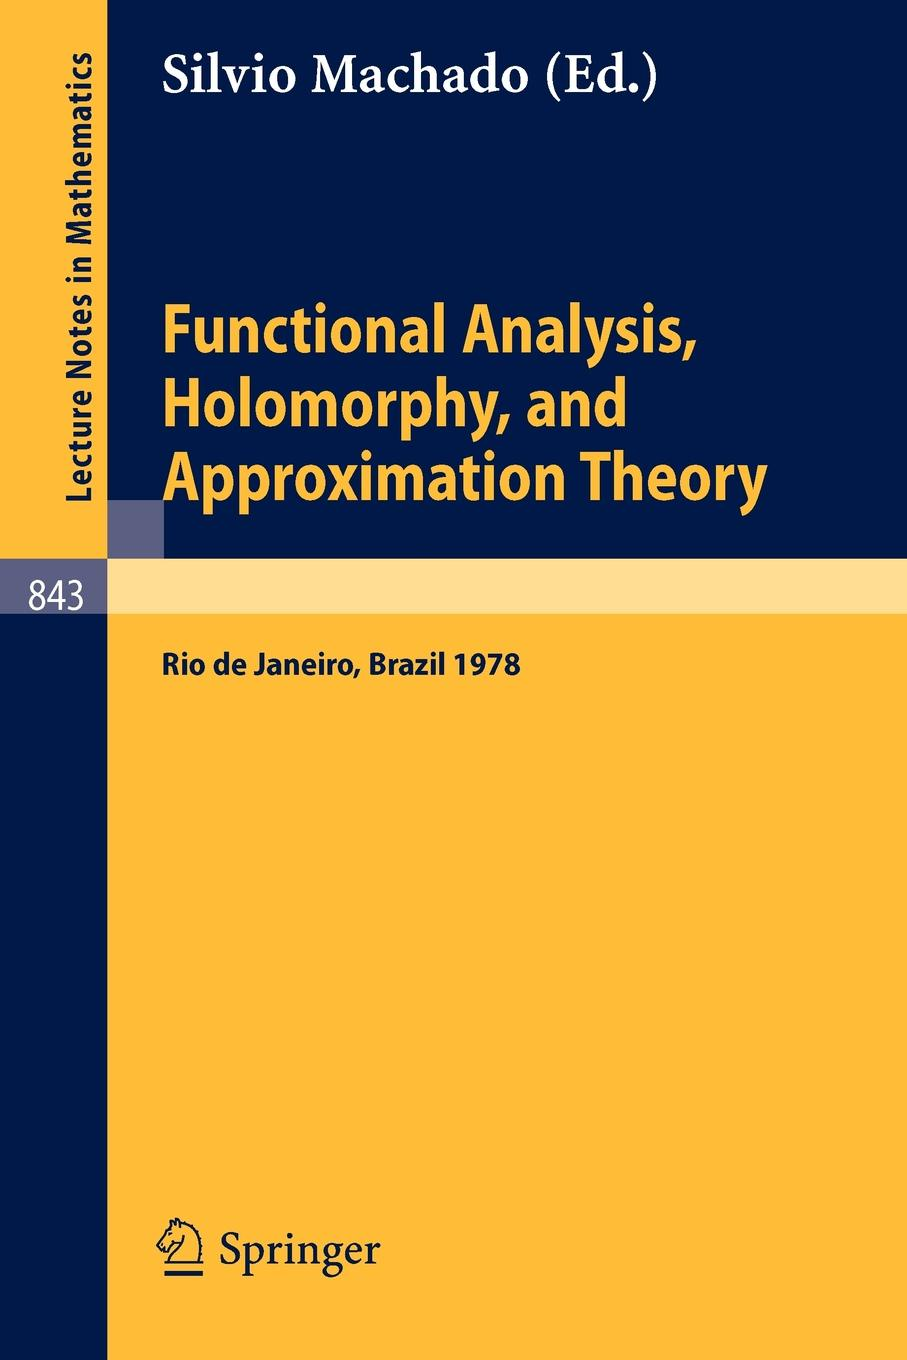 Functional Analysis, Holomorphy, and Approximation Theory. Proceedings of the Seminario de Analise Functional Holomorfia e Teoria da Aproximacao, Universidade Federal do Rio de Janeiro, Brazil, August 7-11, 1978 все цены